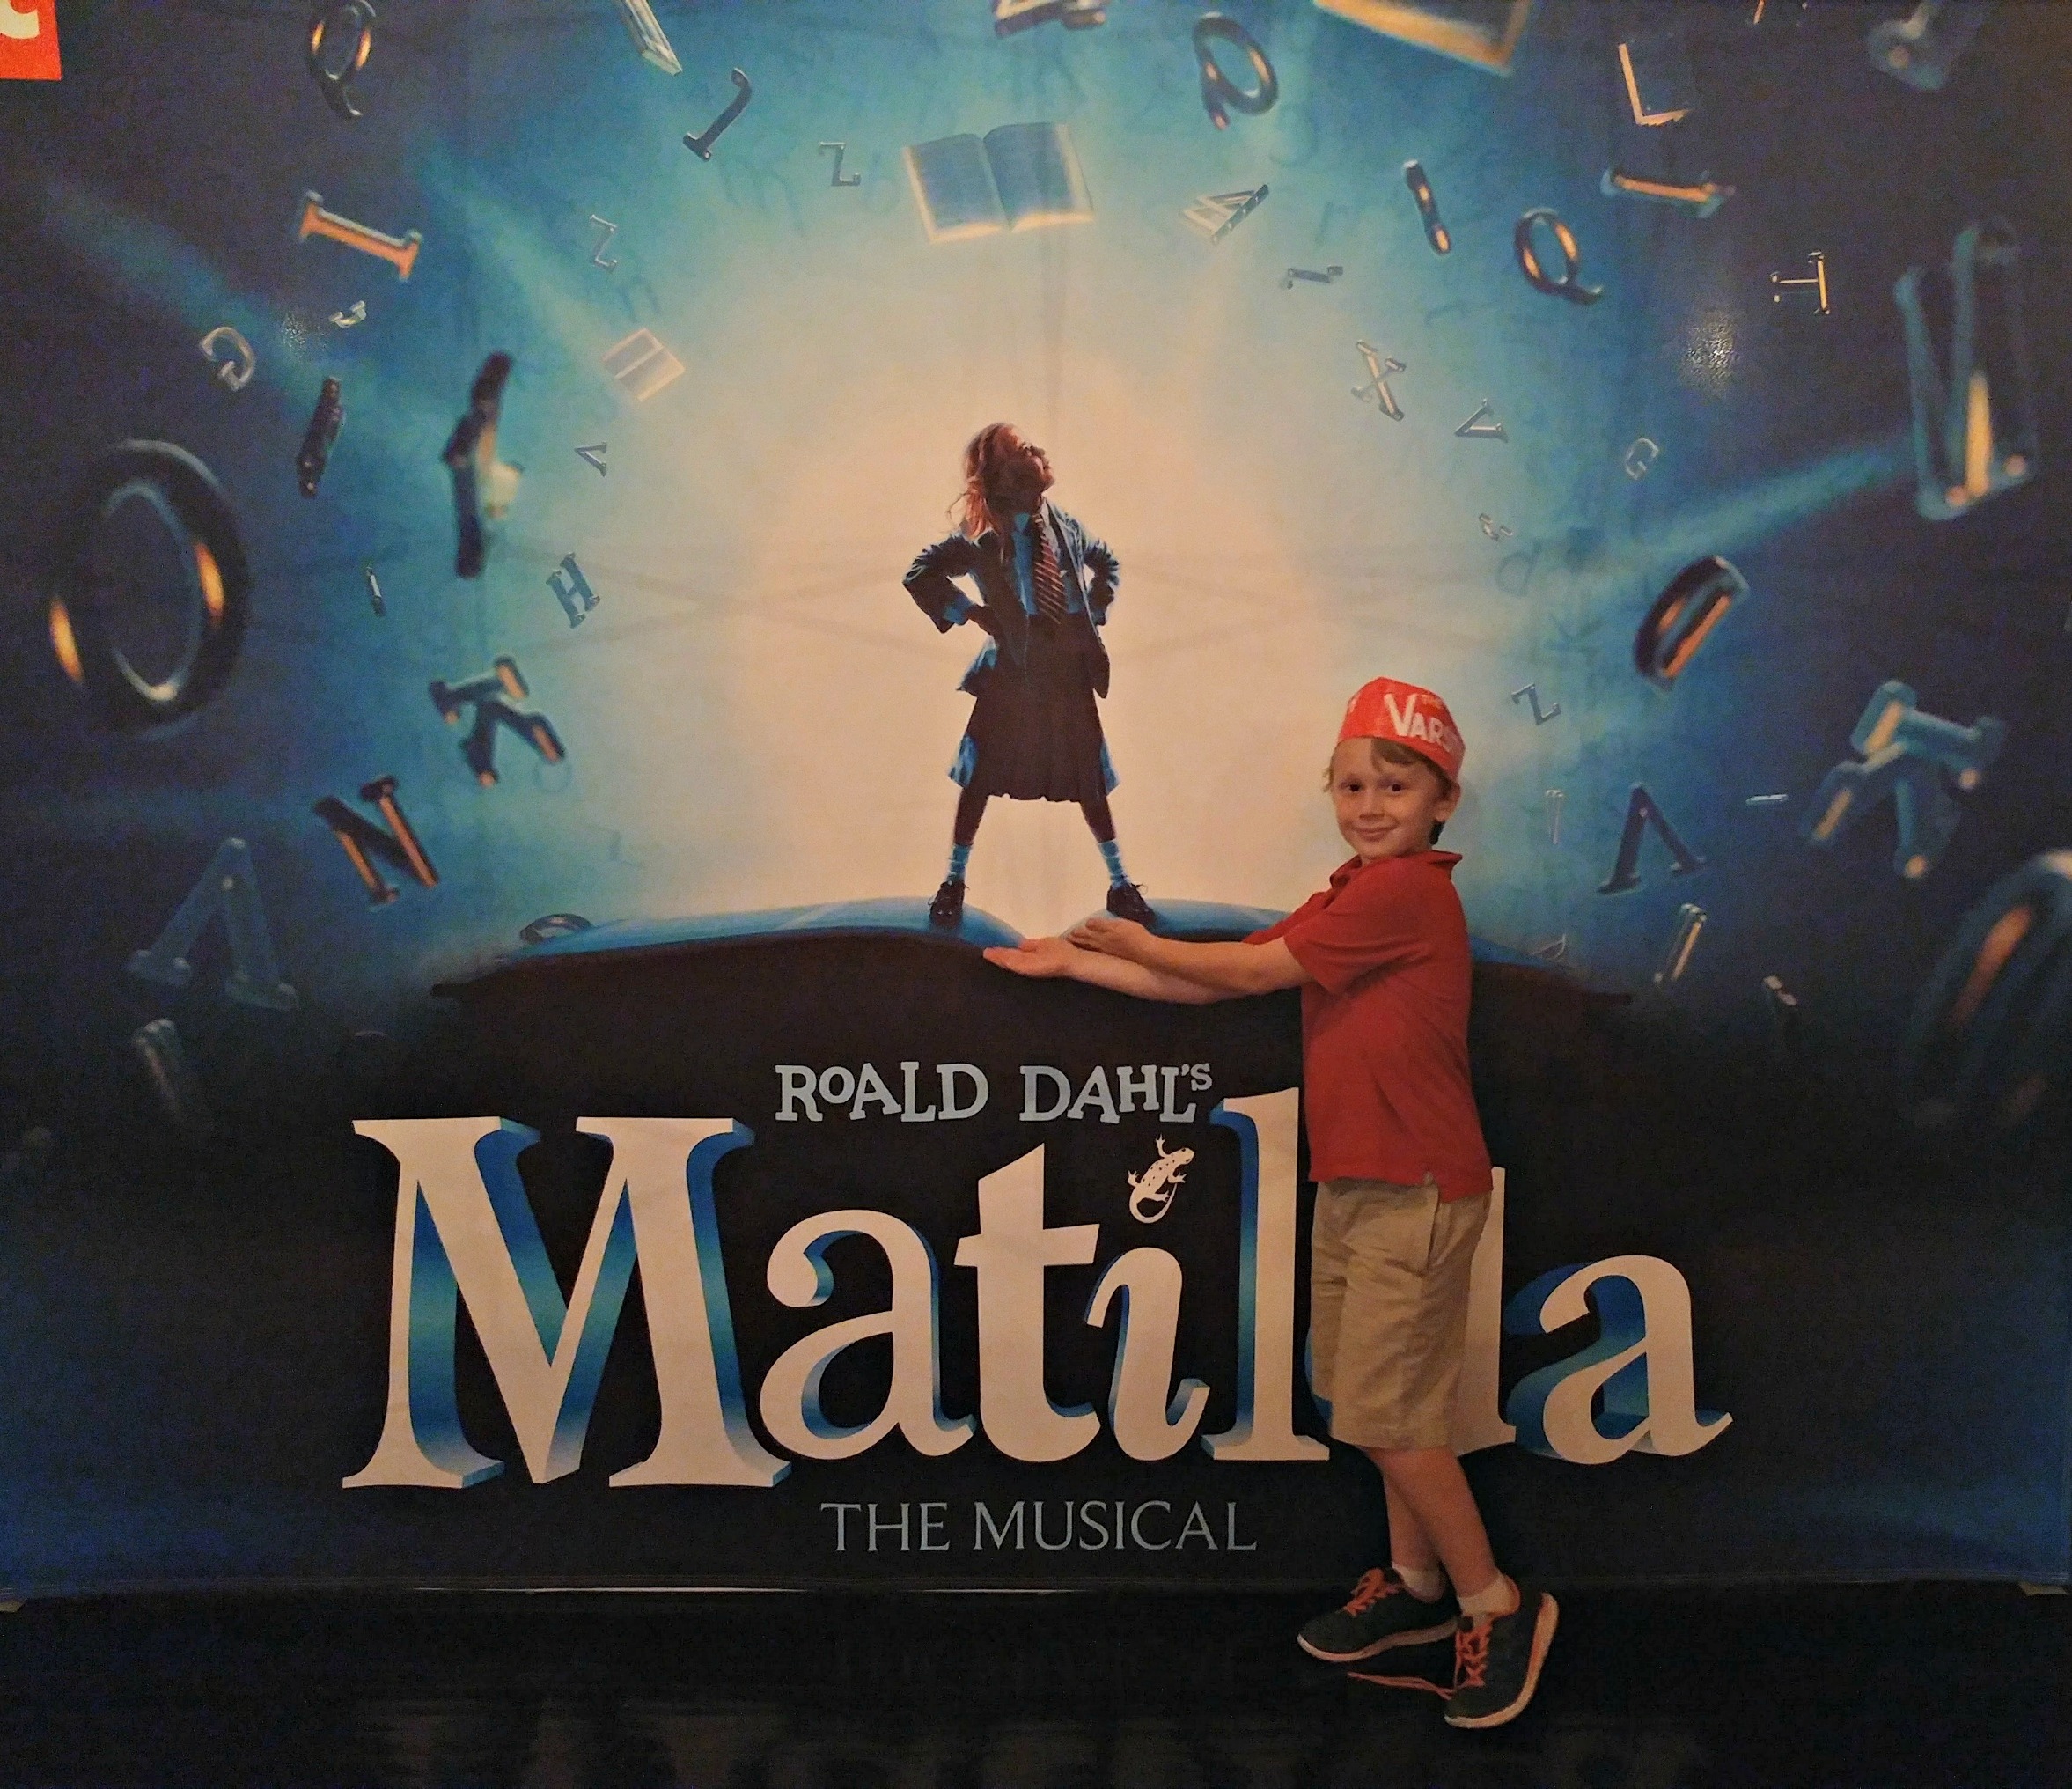 Matilda The Musical is a hit! Giggles from kids and adults alike.